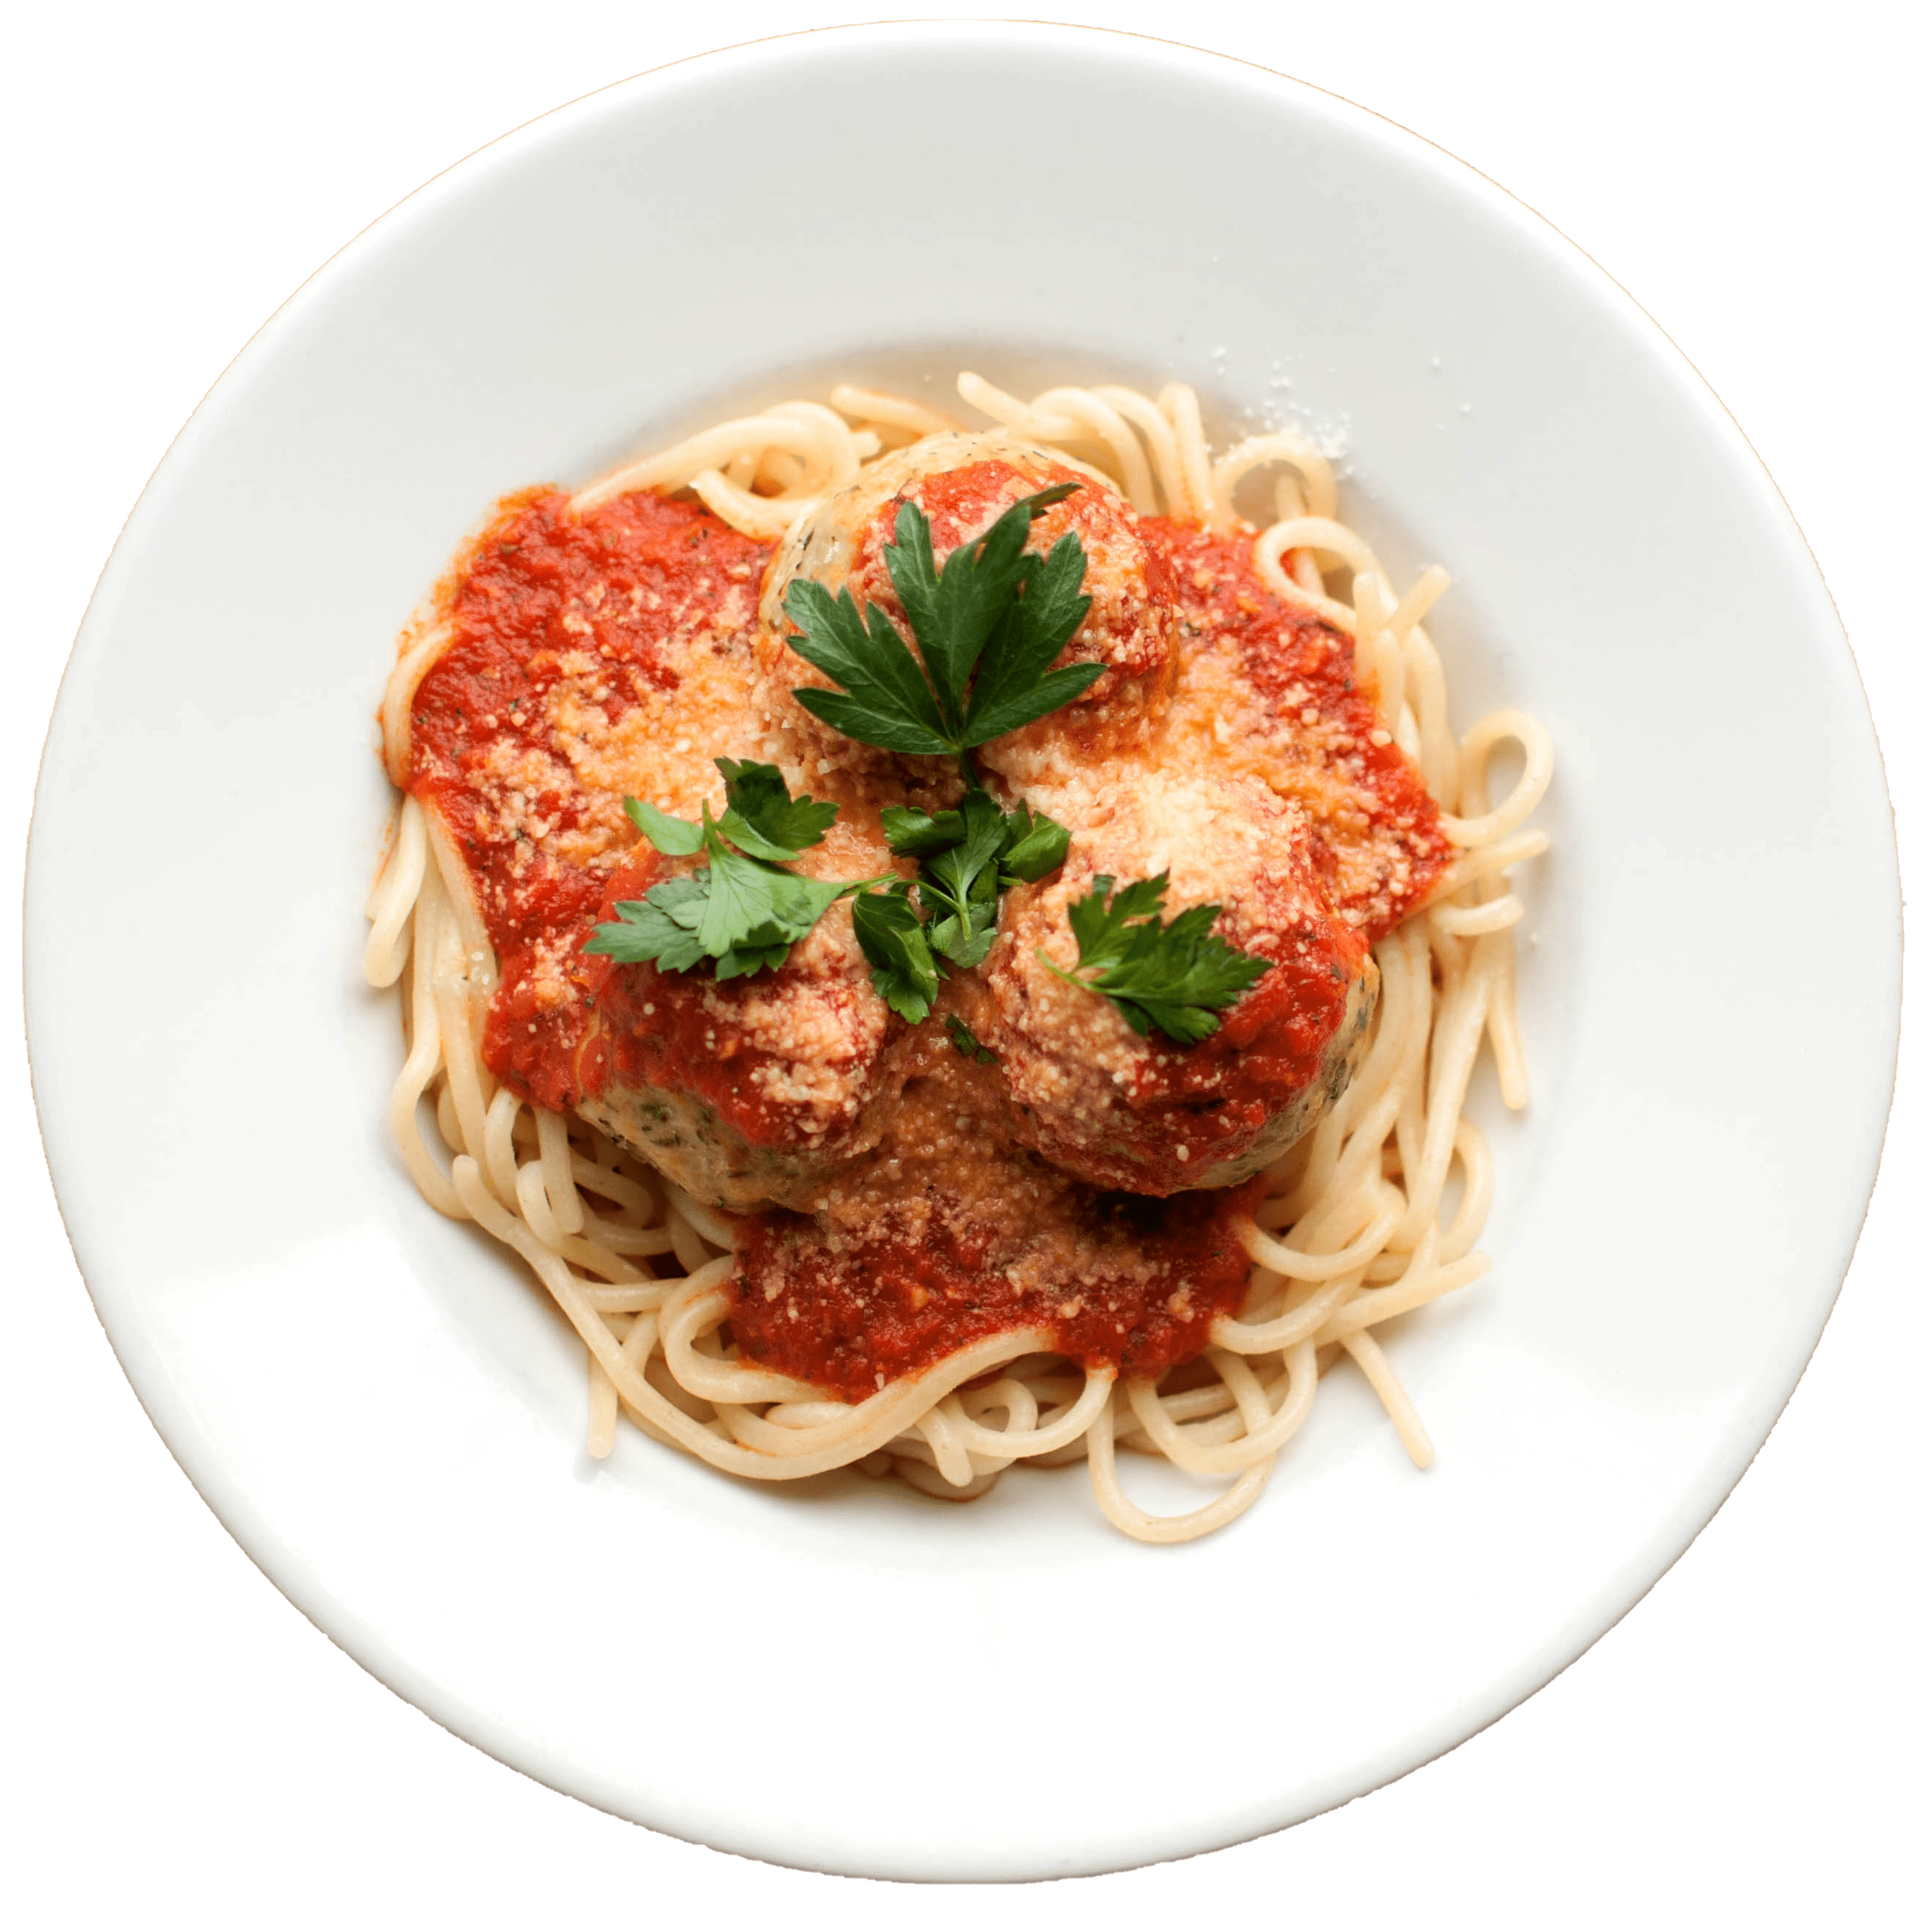 A picture of Twenty Fourth Pizza and meatballs delicious pasta in a dish